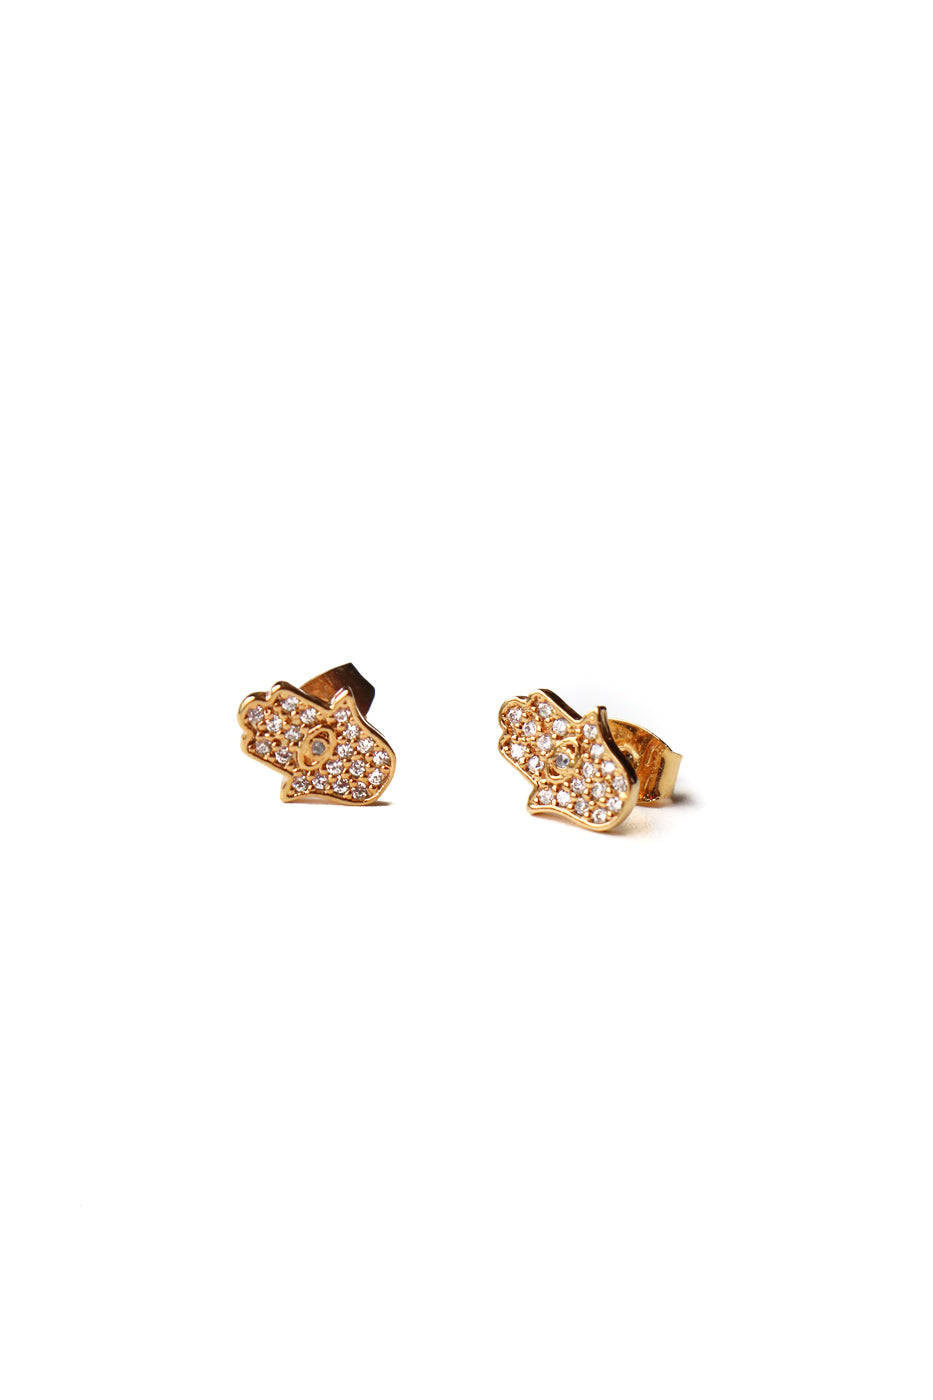 Pave Hamsa Stud Earrings in Gold